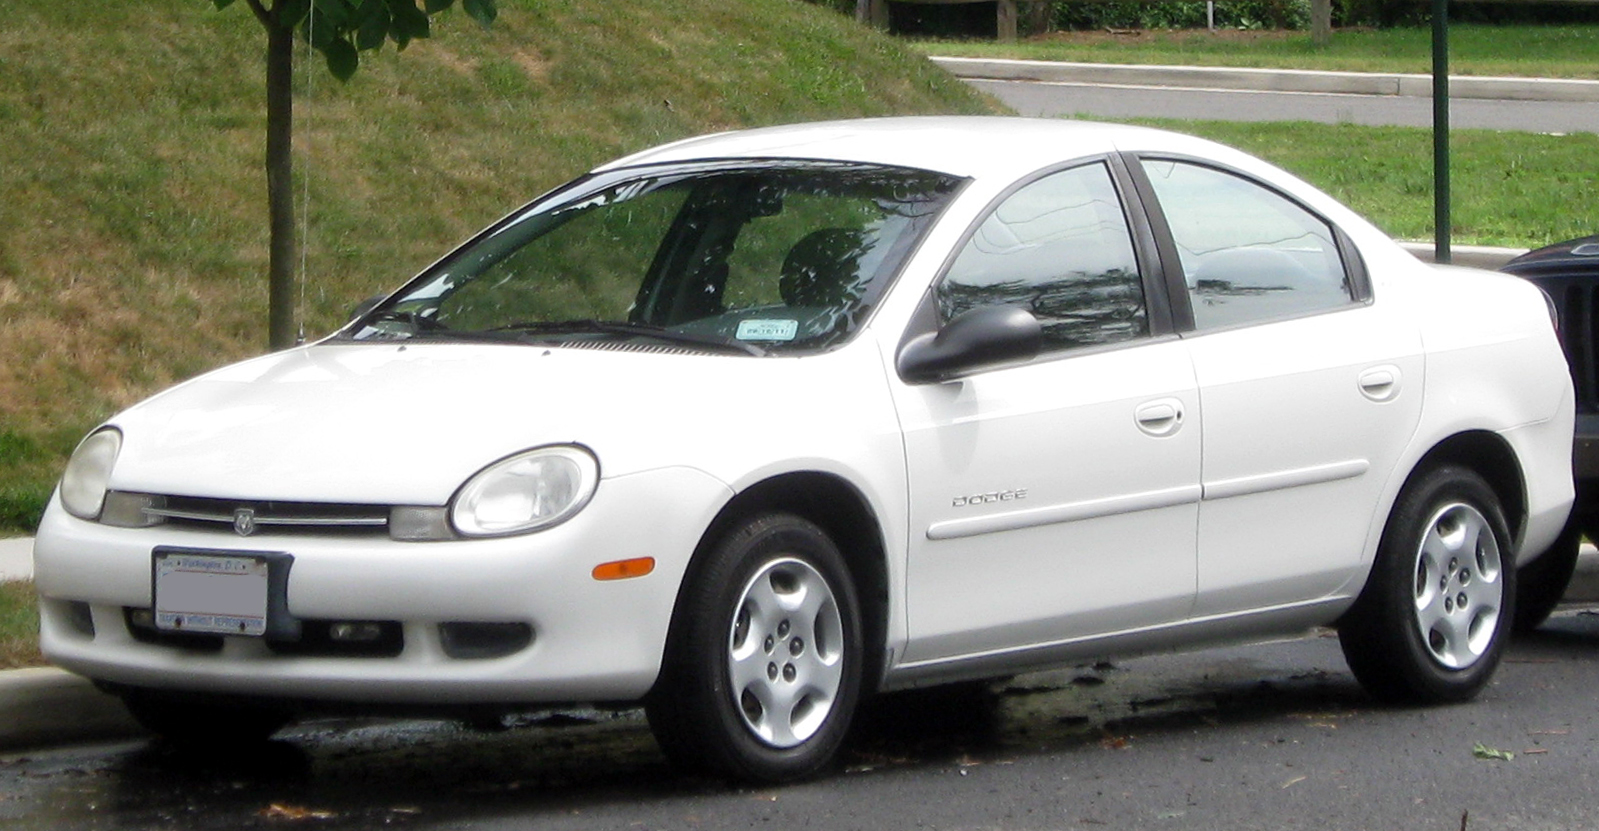 Wiring Diagram On Electrical Wiring Diagram On 2002 Dodge Neon